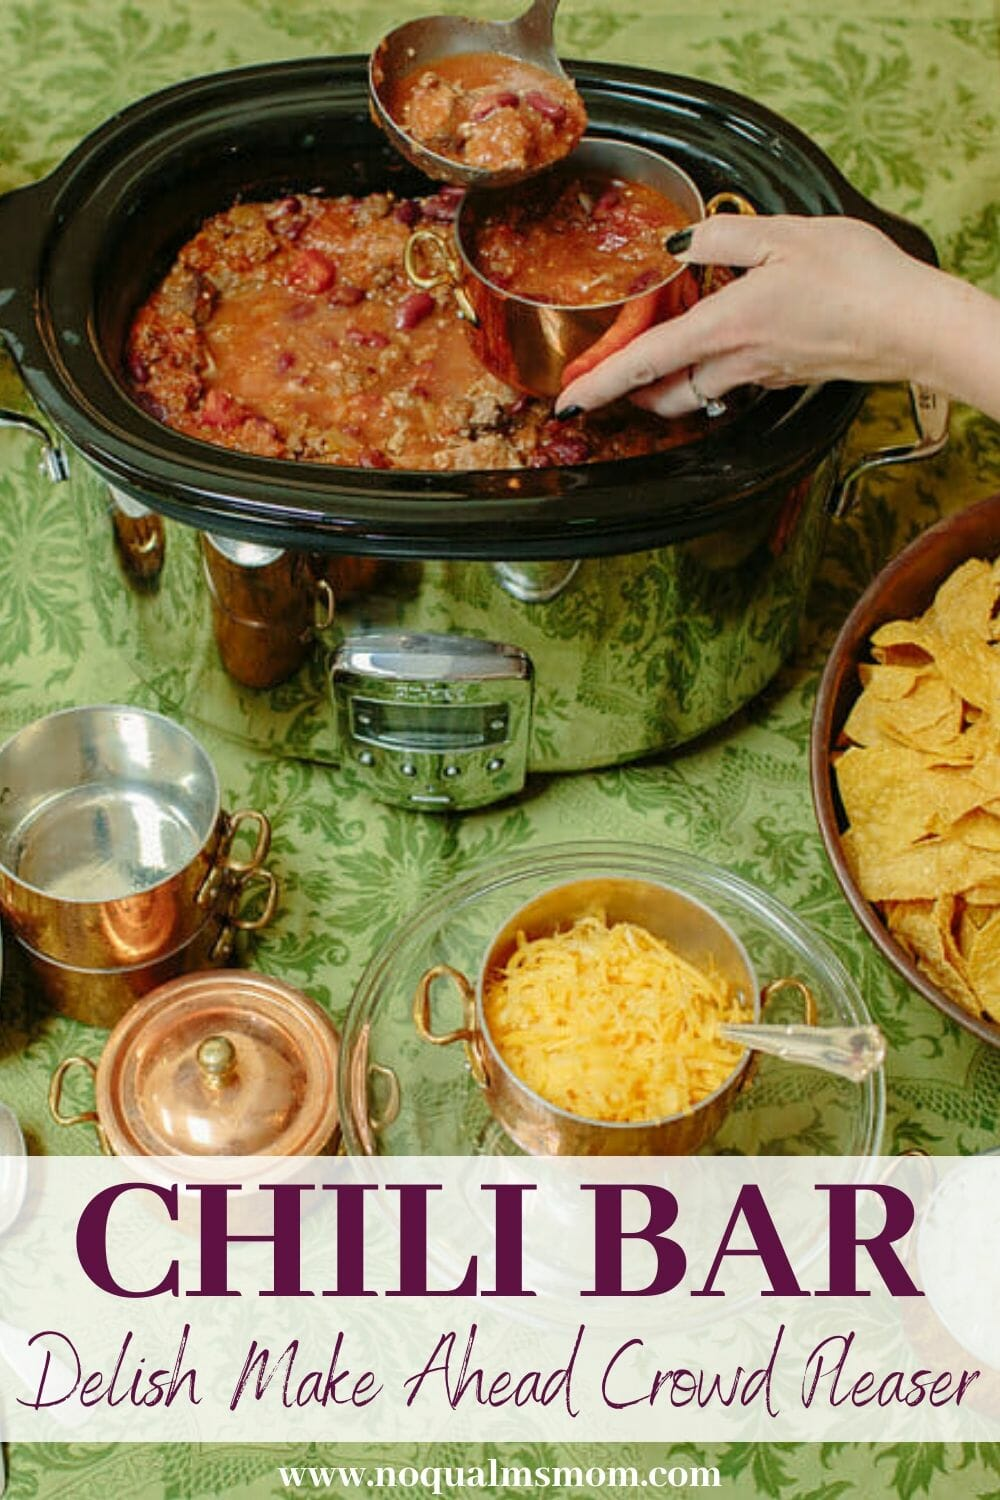 Easy Party Idea: Chili Bar